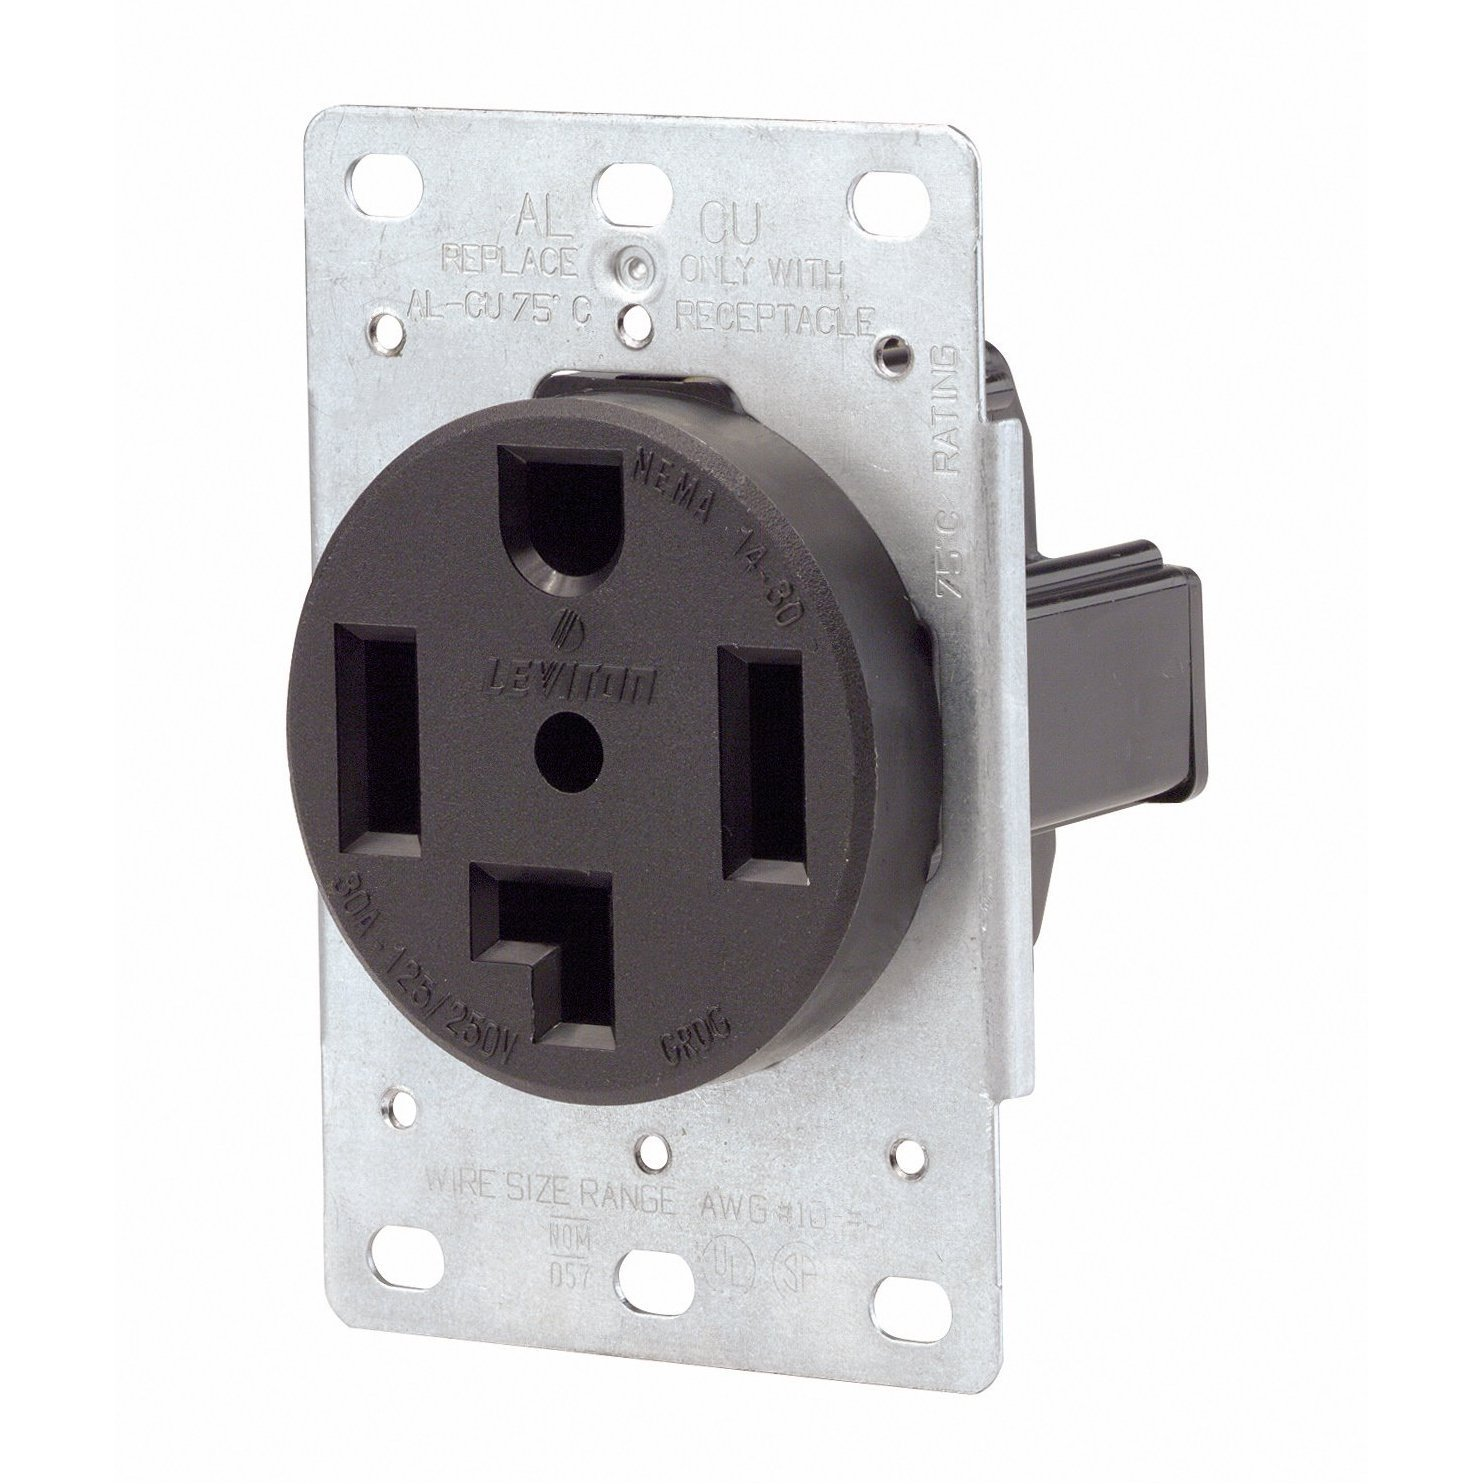 71OtTvFXyFL._SL1484_ amazon com receptacle, single, 30a, 14 30r, 250v, black home leviton 30a flush mount power outlet wiring diagram at bayanpartner.co